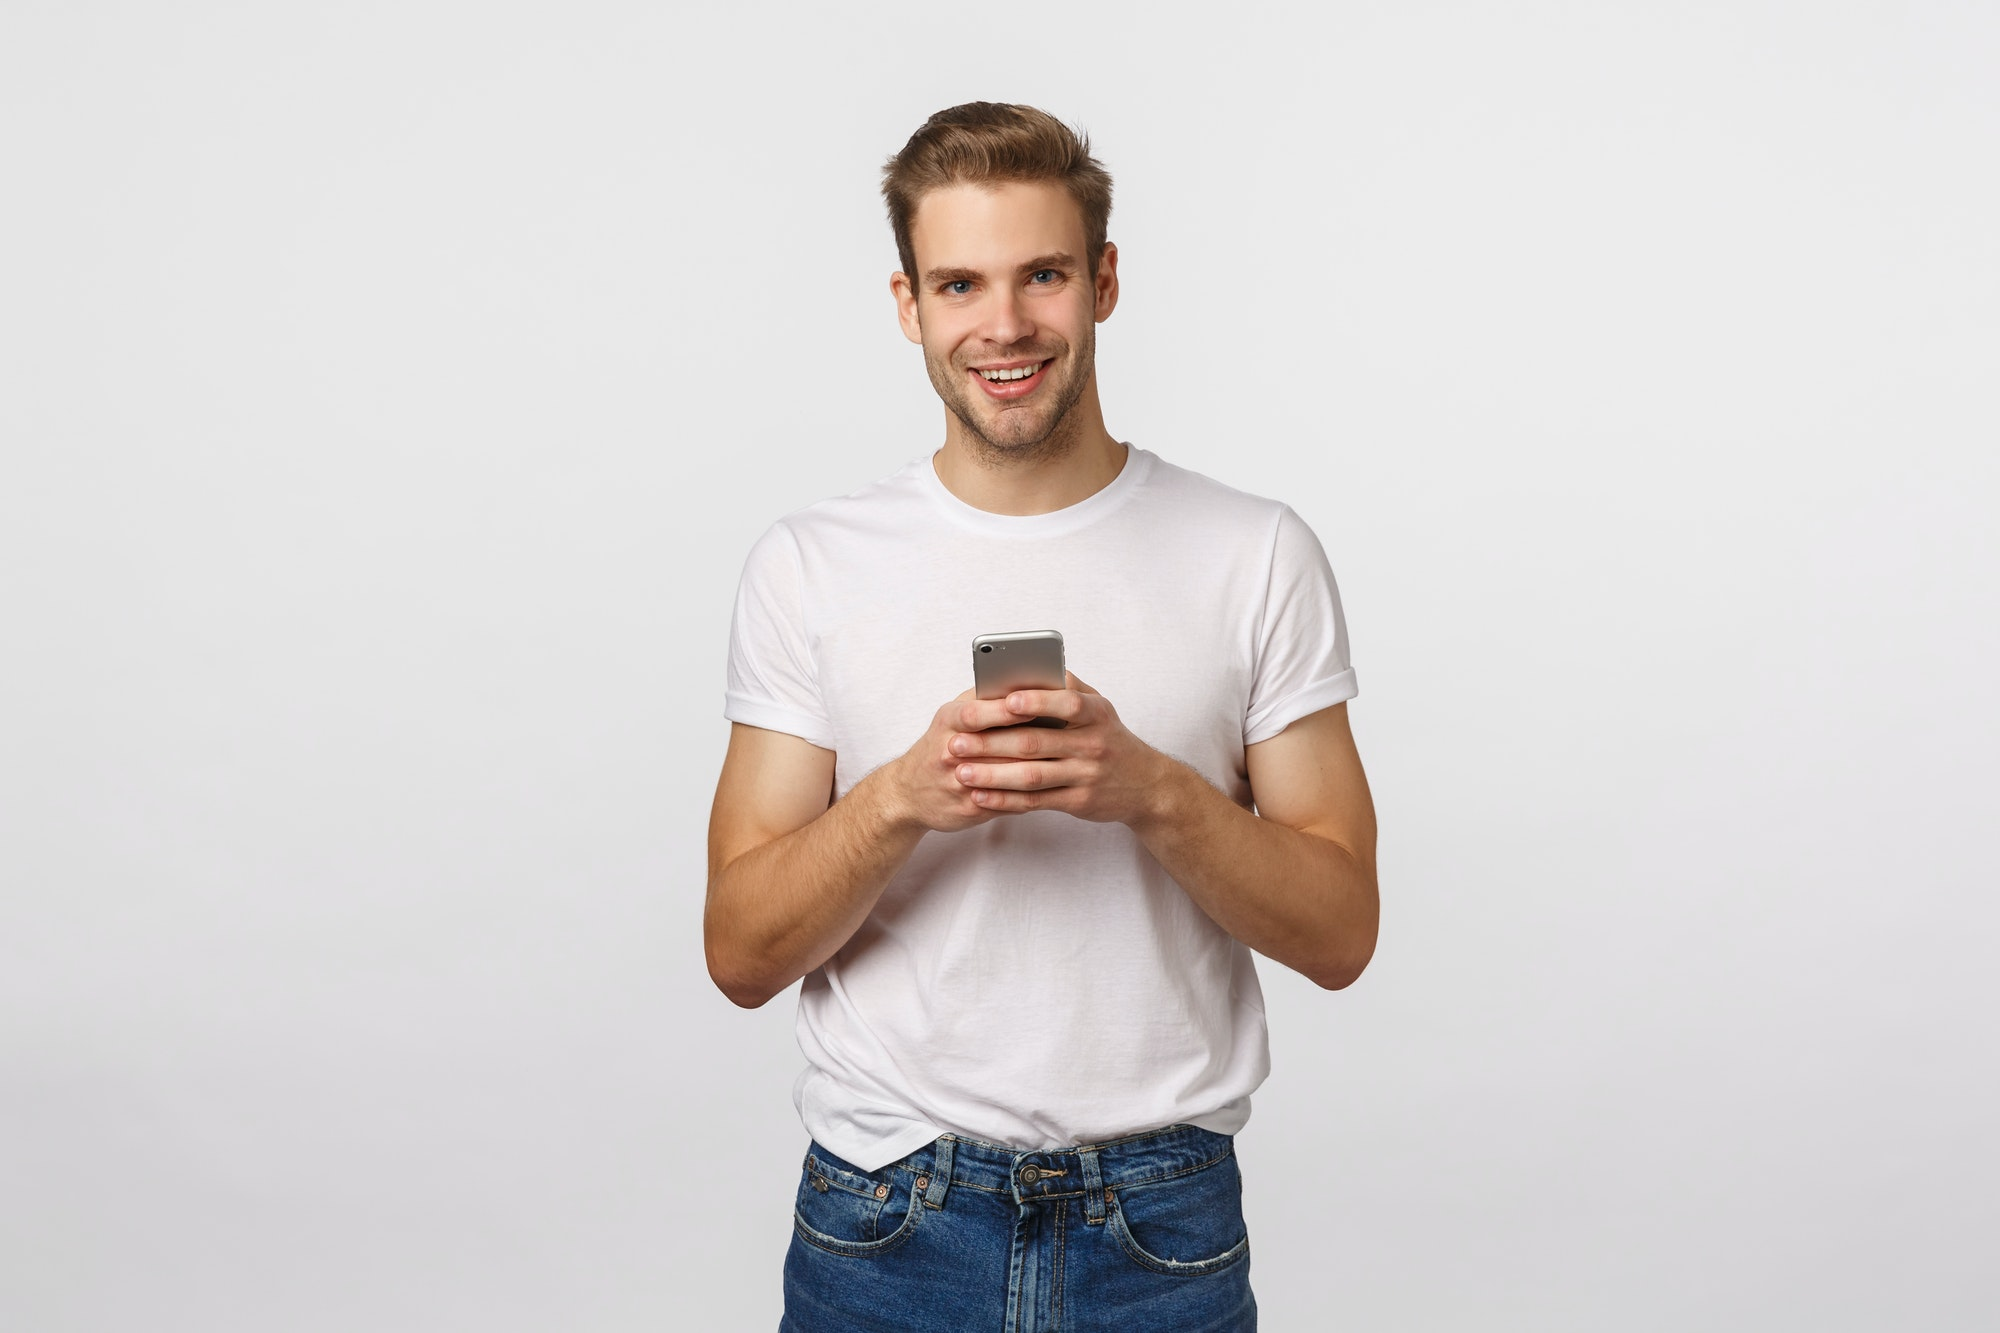 Telephone, digital modern life, technology concept. Handsome smiling blond caucasian man with